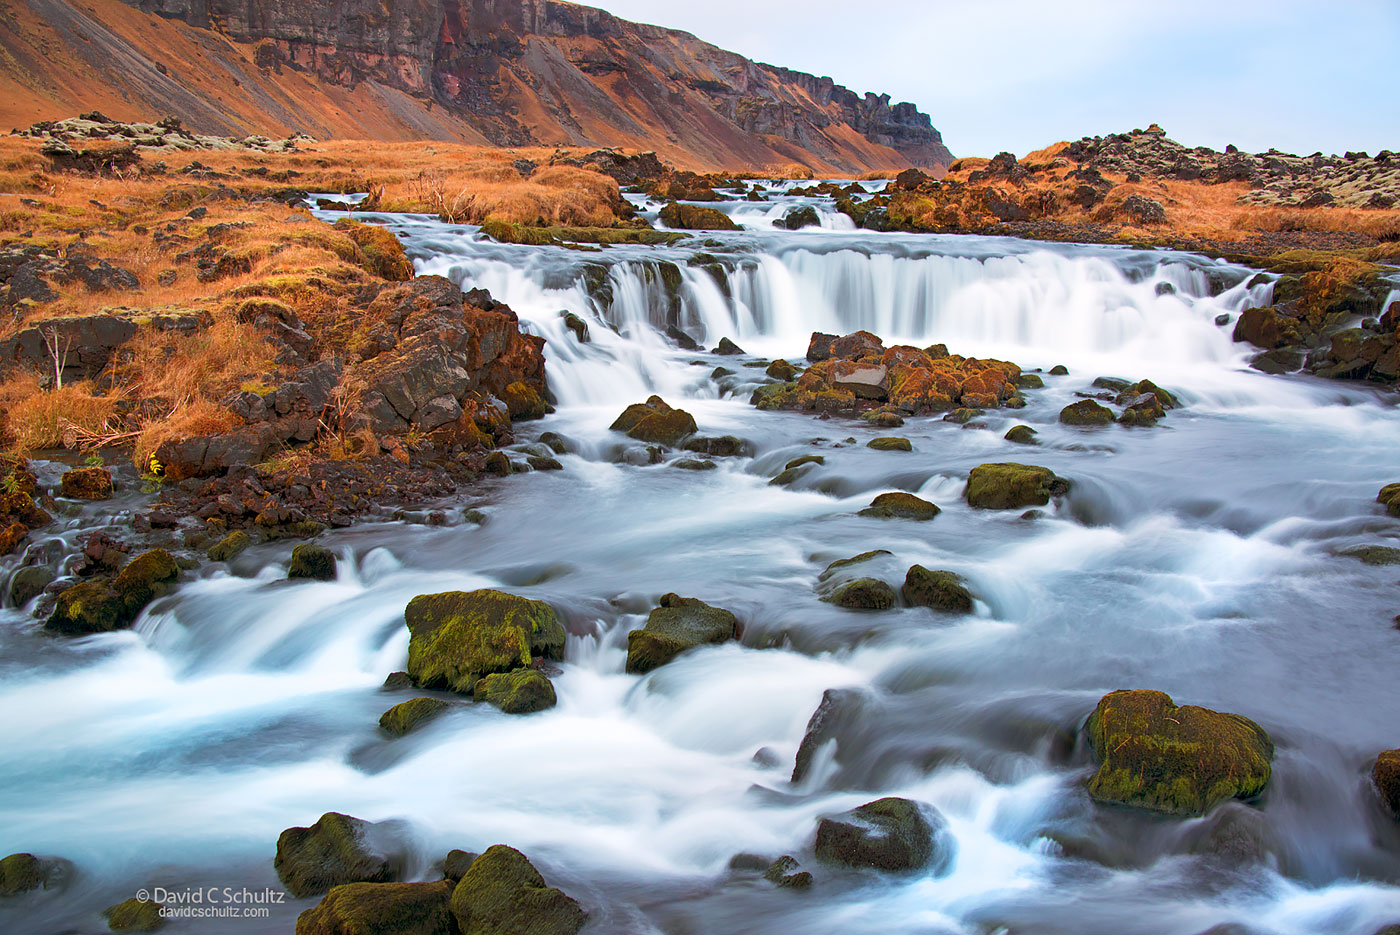 Iceland Waterfall - Image #211-4